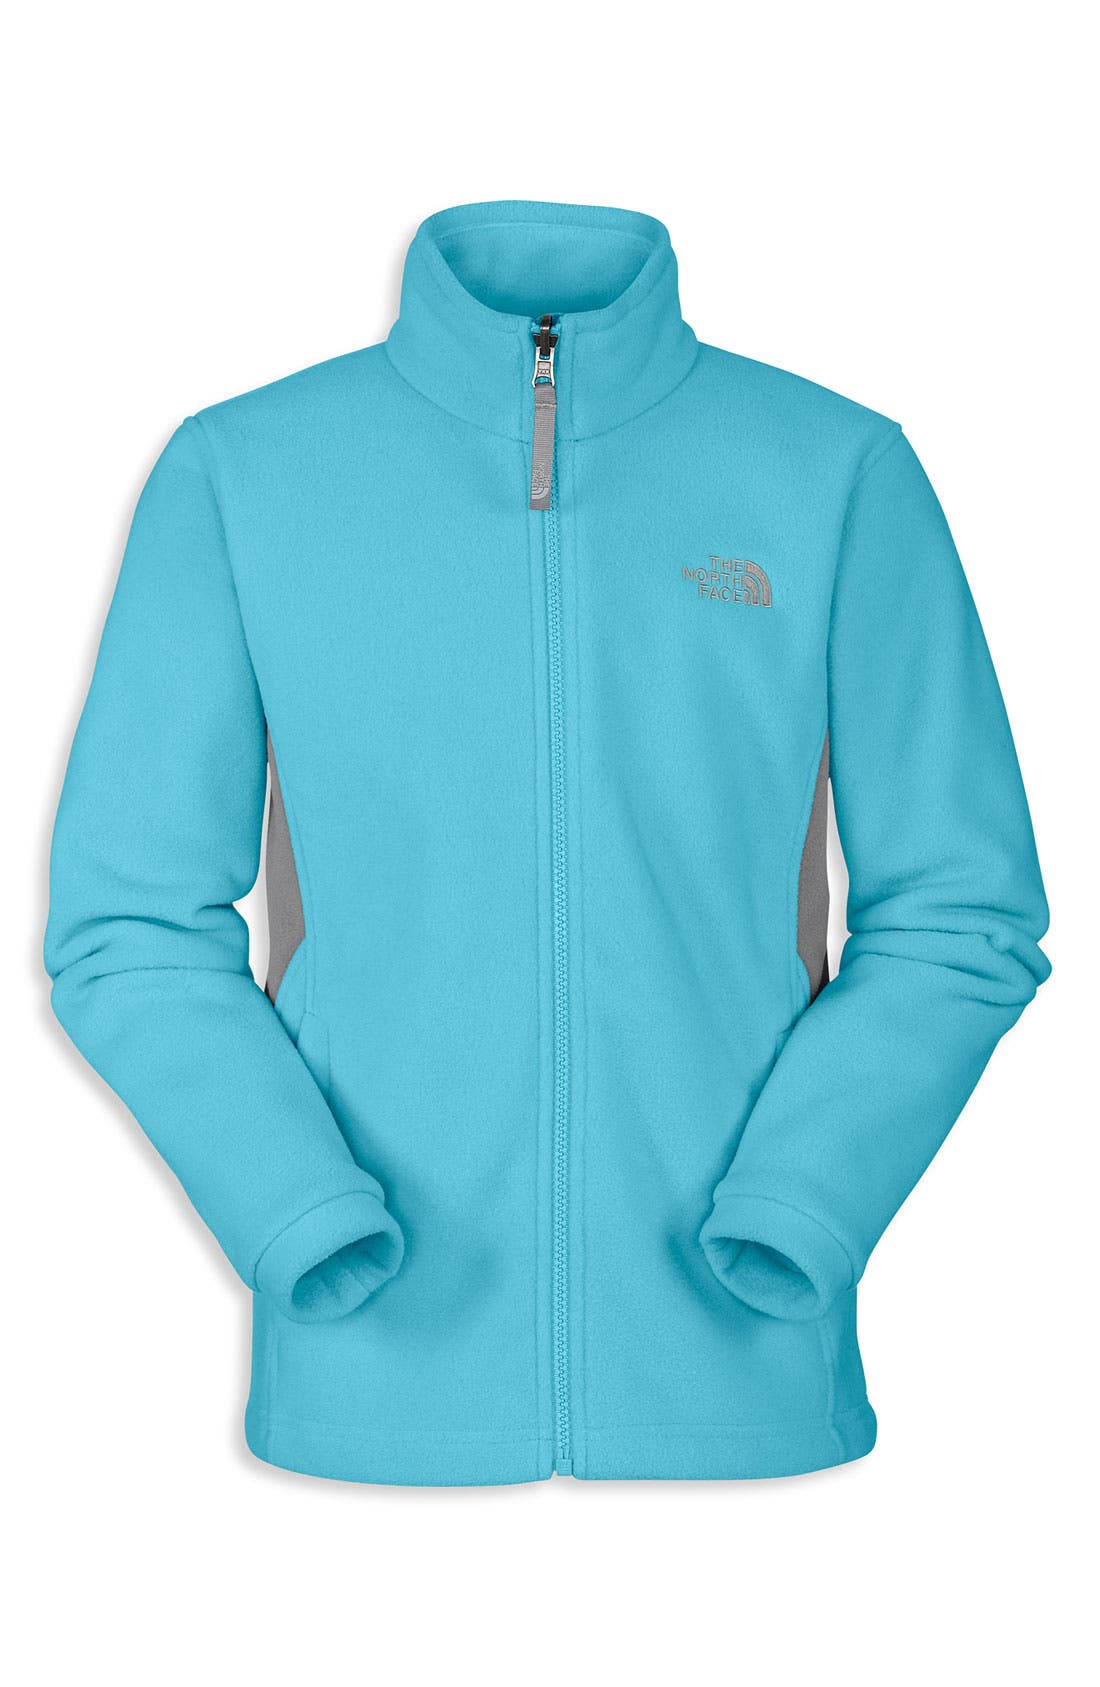 Alternate Image 1 Selected - The North Face 'Khumbu' Fleece Jacket (Big Girls)